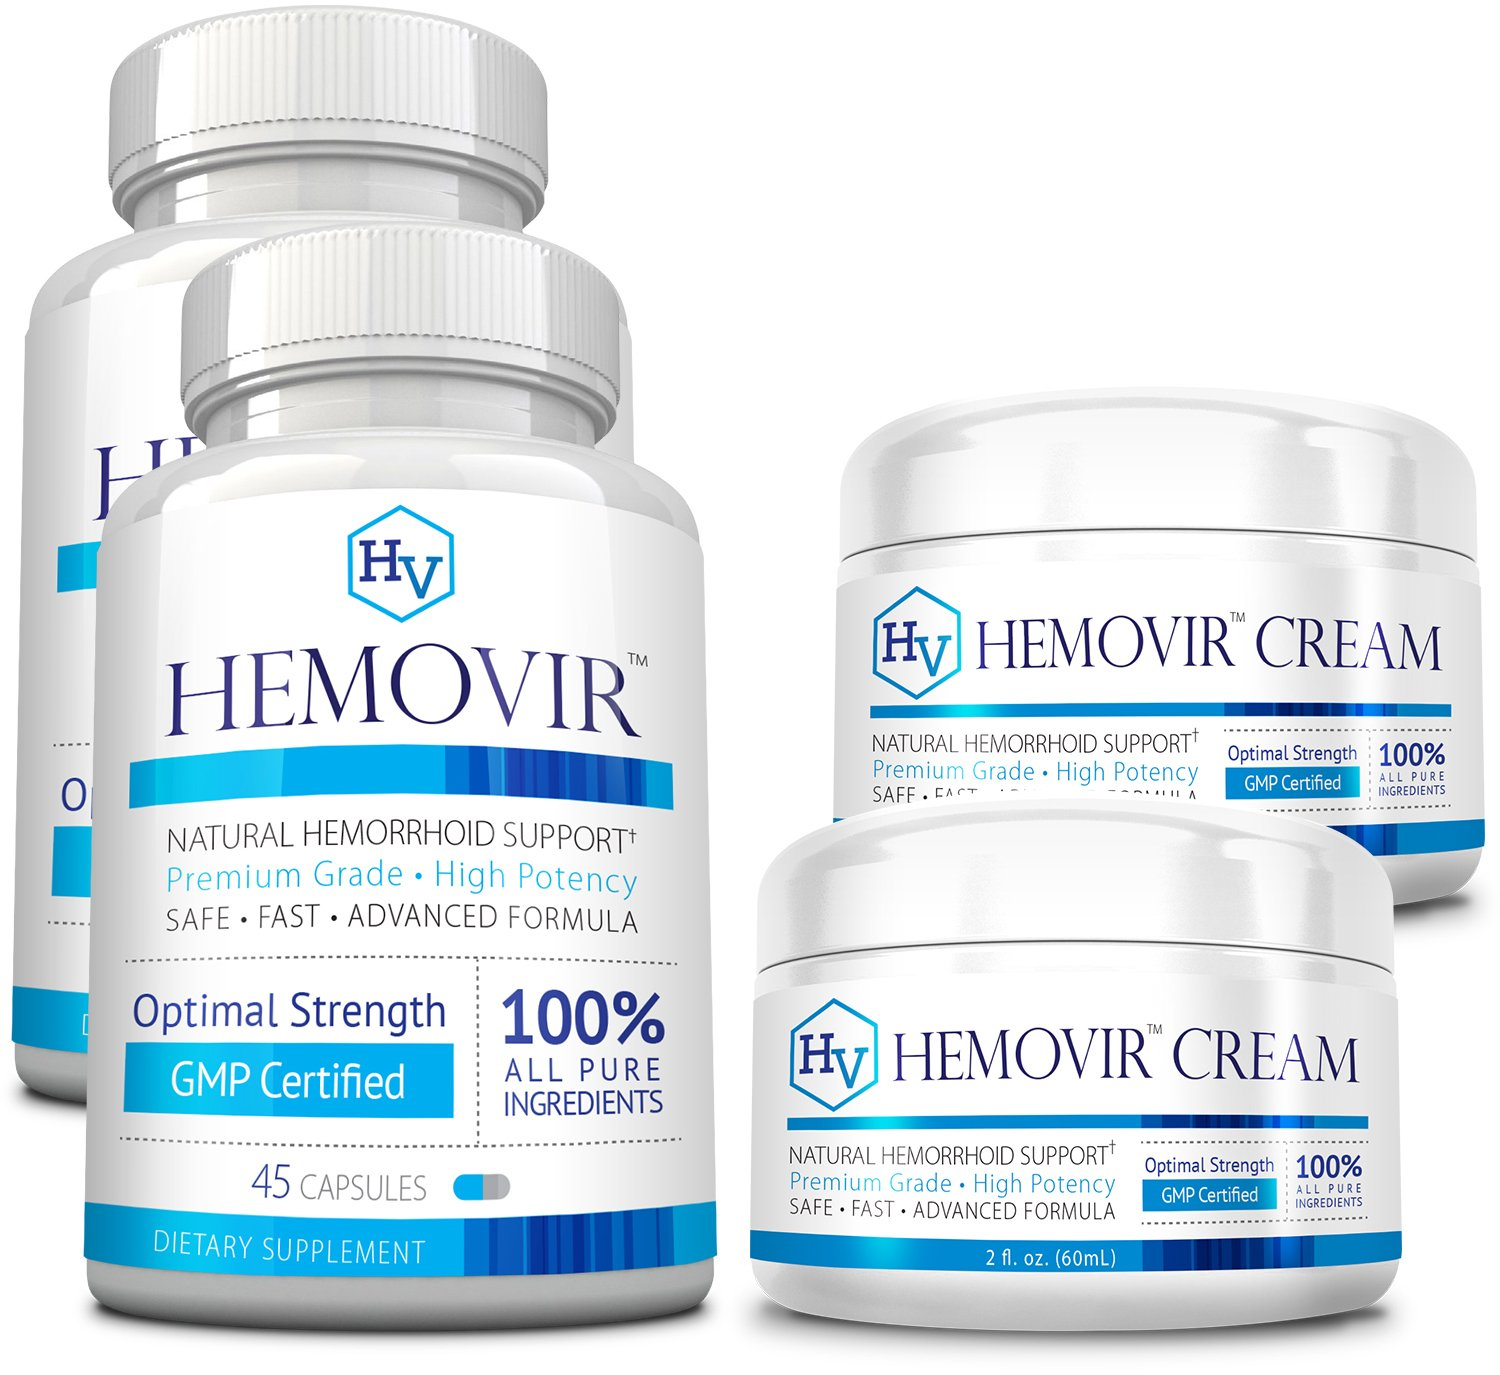 Hemovir - 2 Month Supply - 2 Bottles & 2 Creams